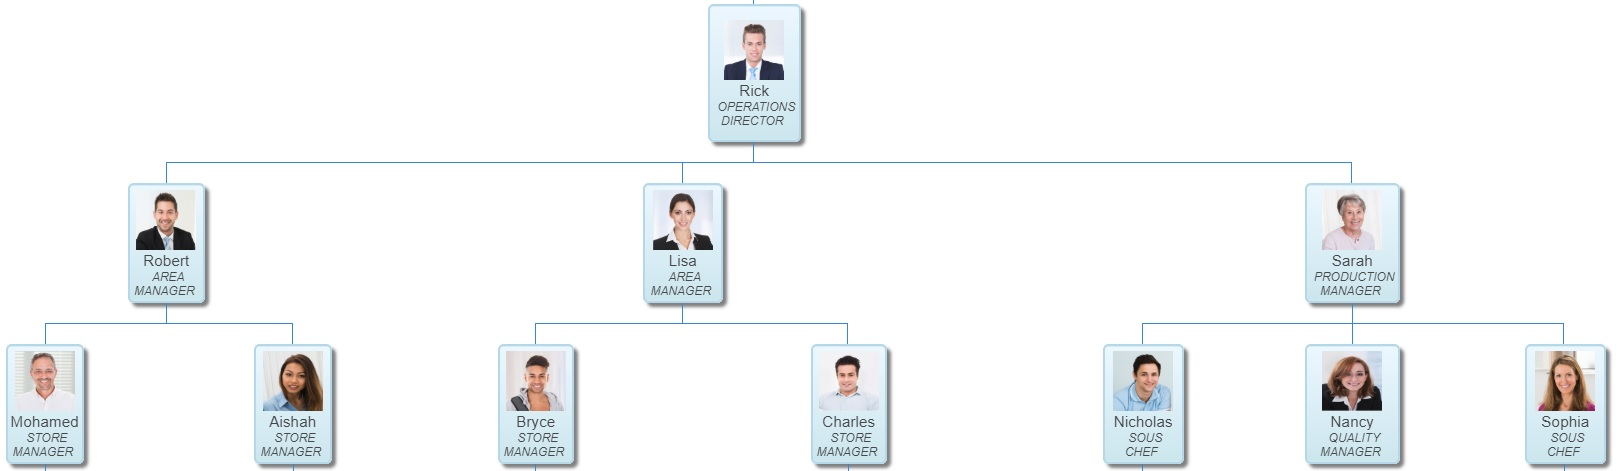 AGHRM organisation chart